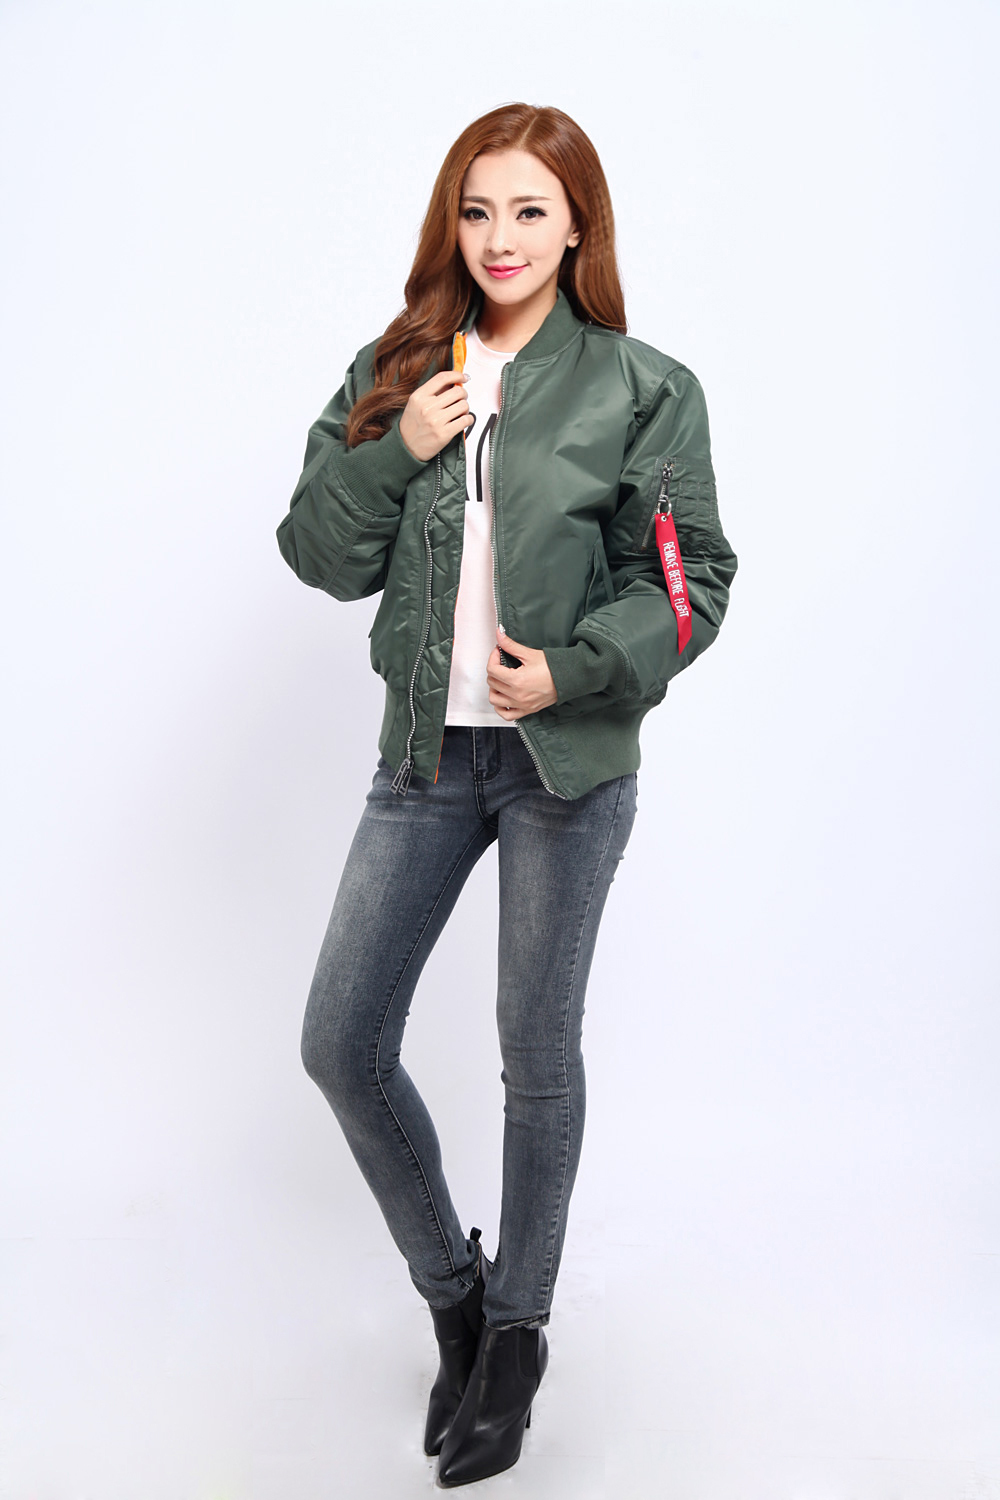 MA1 Jacket Black Military Air Force MA 1 Coat Flight jacket ...